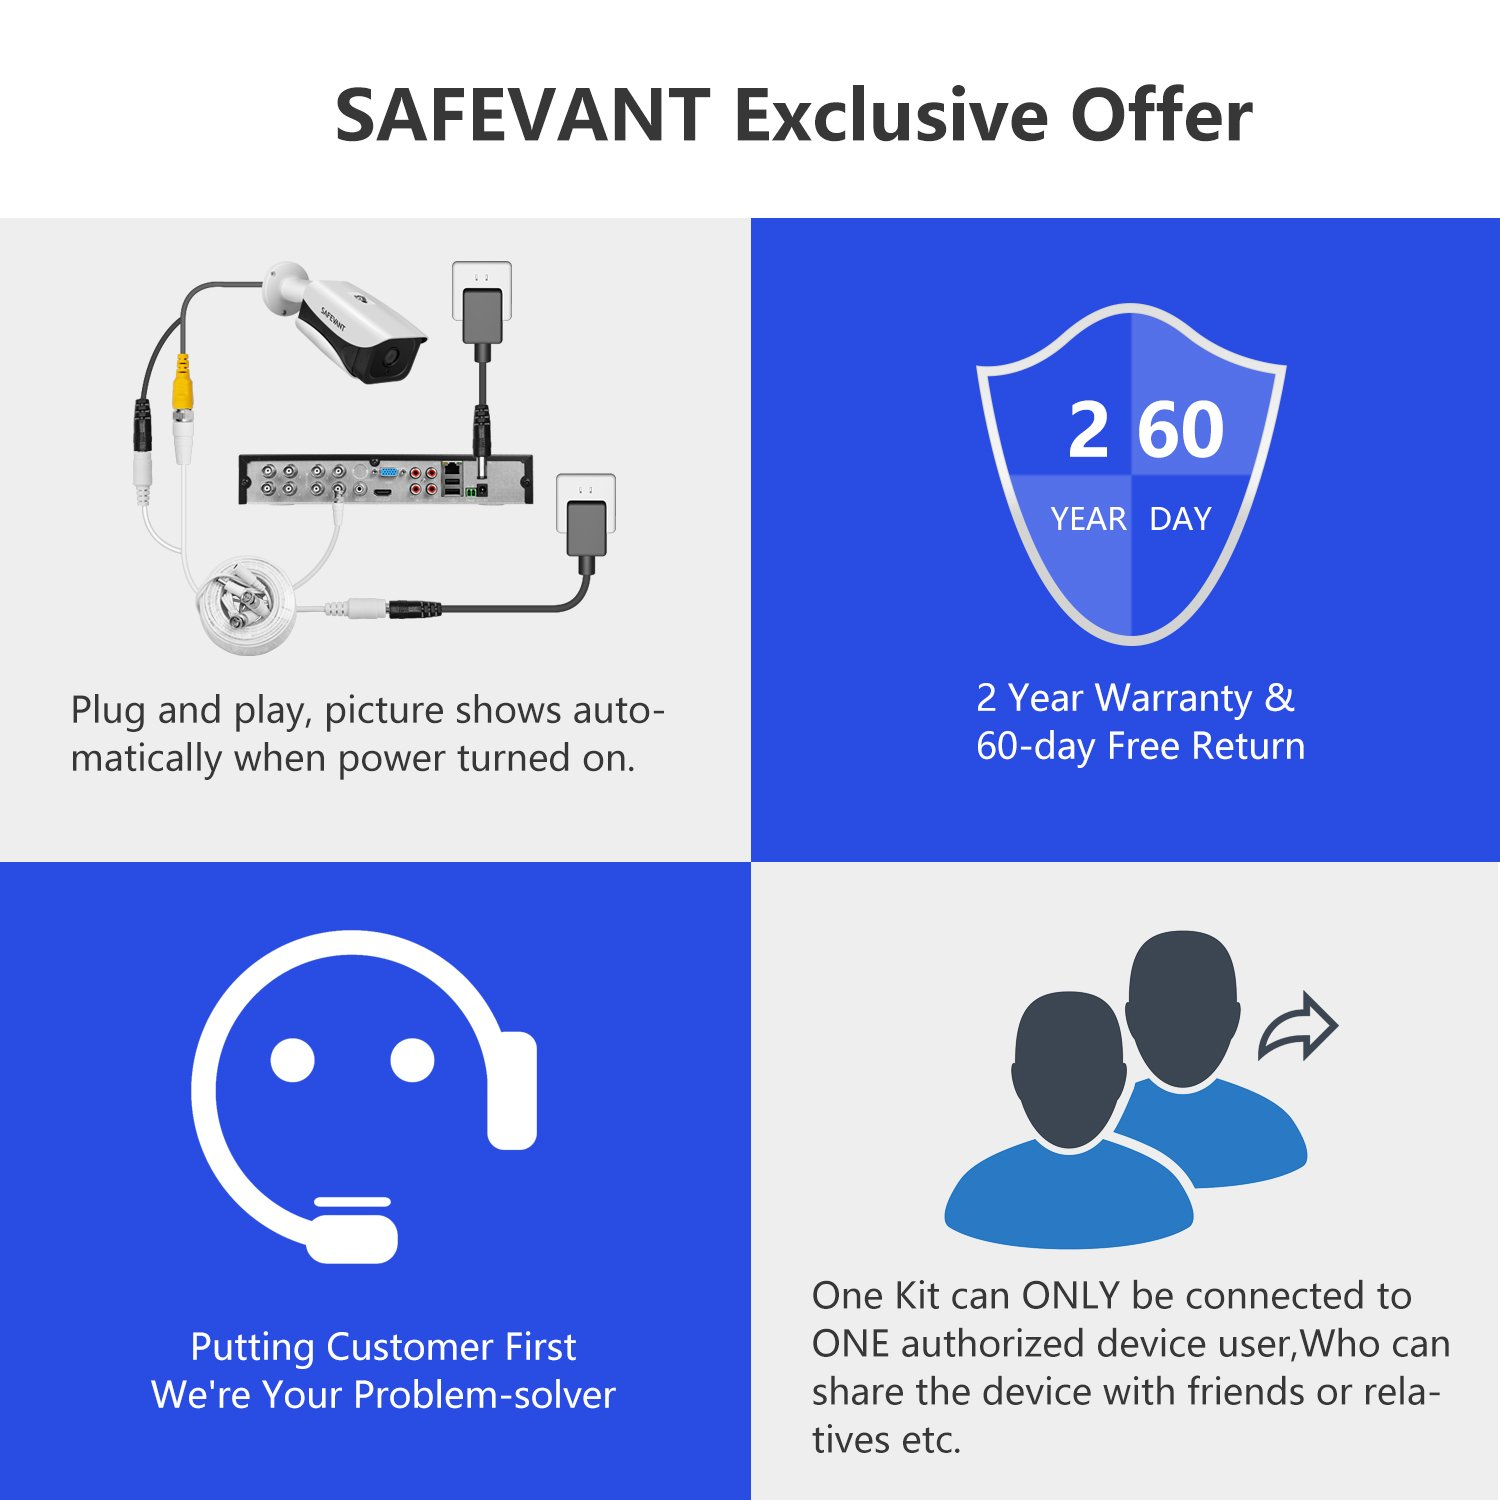 1080P Security Camera System with 2TB Hard Drive,SAFEVANT 8CH 5-in-1 DVR System with 8pcs 2MP Indoor Outdoor CCTV Cameras with Night Vision